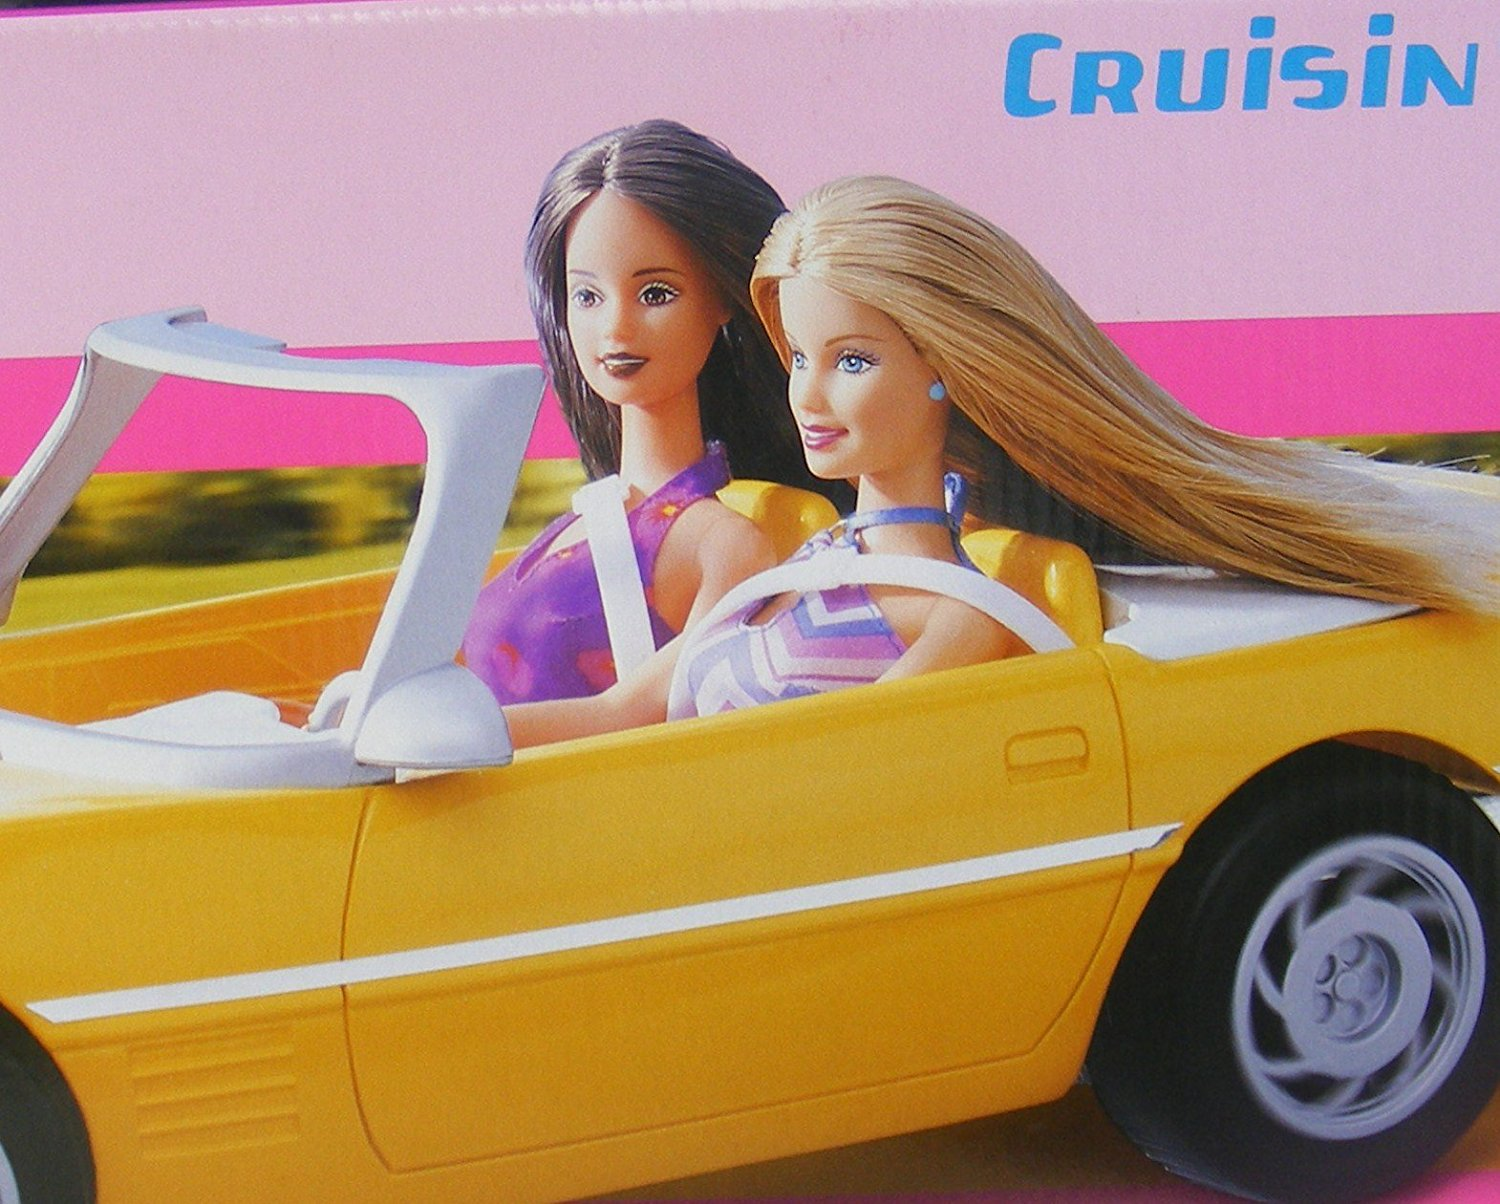 Barbie Car Rare Yellow Cruisin Corvette Vehicle (2001)